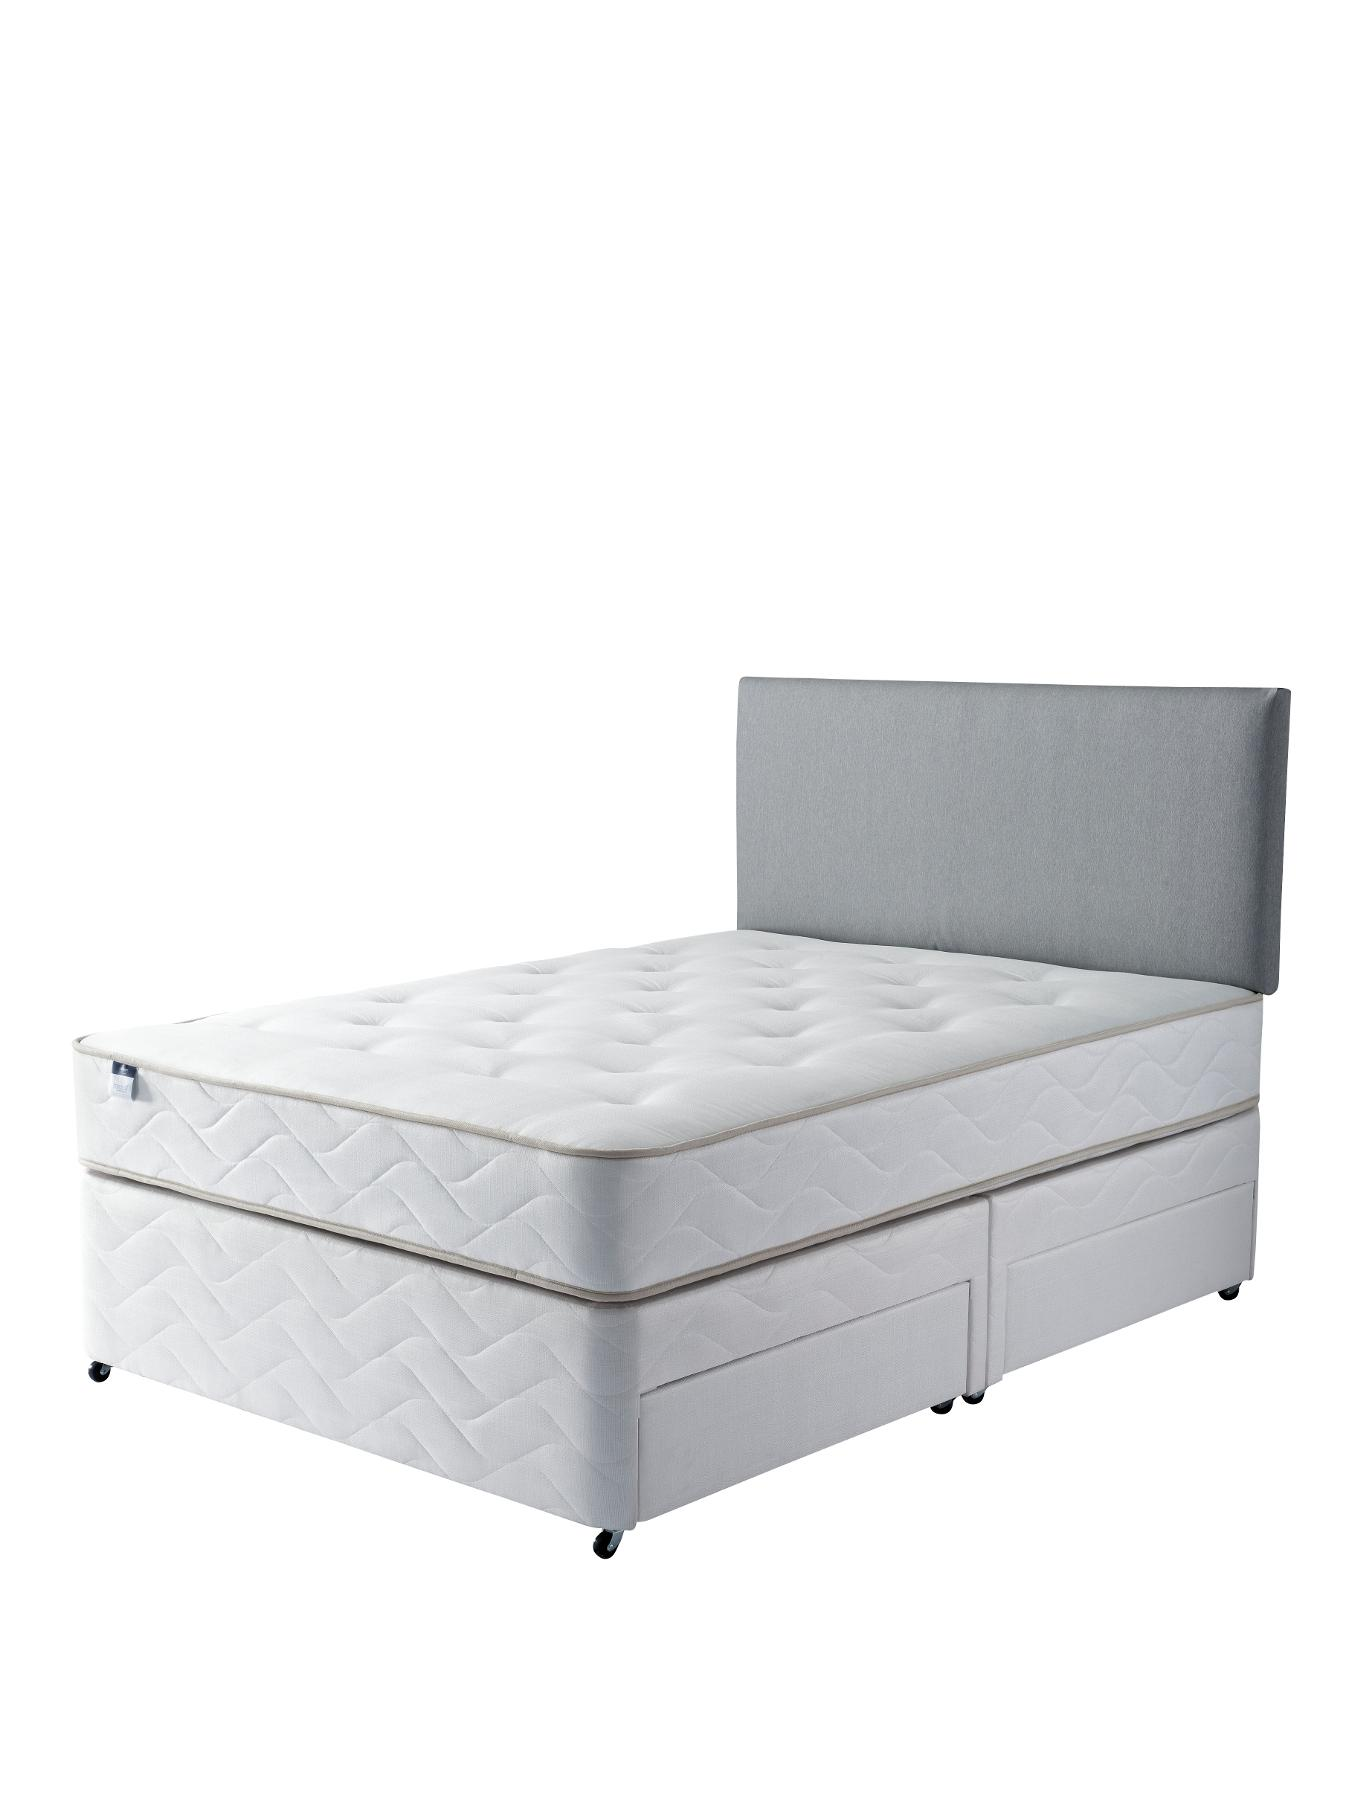 Comfort Classic Deep Quilt Divan Bed - Medium Firm, White,Beige